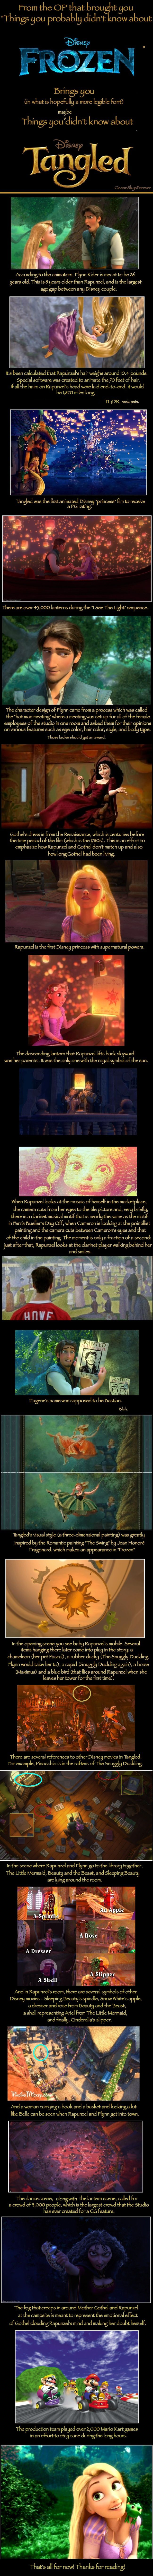 I only knew a few of these (Flynn's age, Gothel's dress, some of the symbols from other movies, Pinocchio's cameo) but I love the name Bastian, but that would be redundant since there's a Disney character name Sebastian already. Also, many people know this by now but Gothel's affection for Rapunzel's hair rather than Rapunzel herself shows how she never loved HER, but rather loved her powers. The descending lantern fact is my fav! ADORABLE!